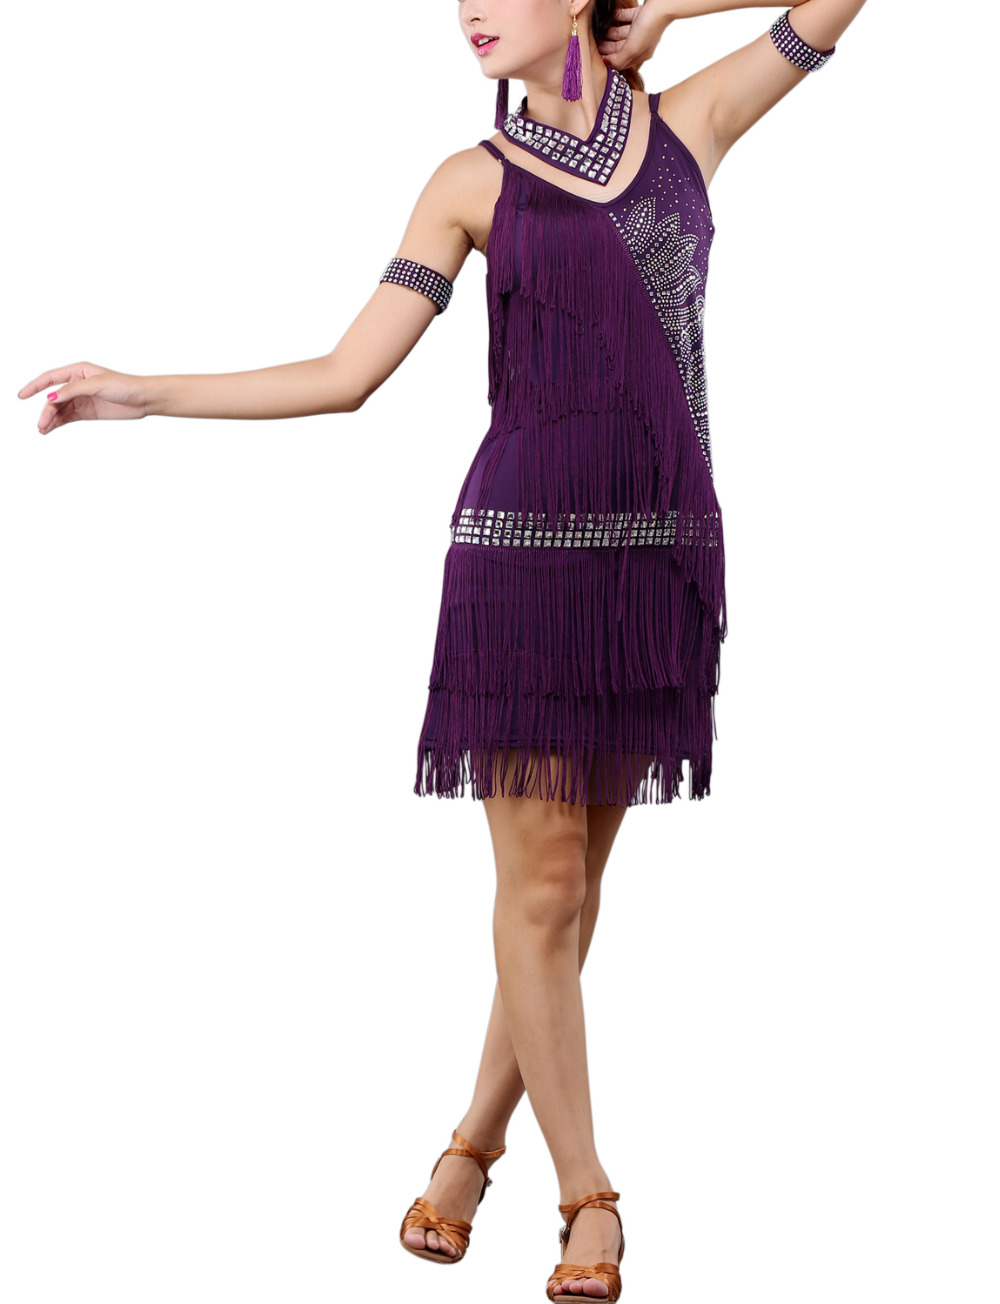 d312b329715 Whitewed 20 s Drop Waist Fringe Beaded Great Gatsby flapper Era Style  Dresses Clothing Clothes Costume Outfit-in Dresses from Women s Clothing on  ...